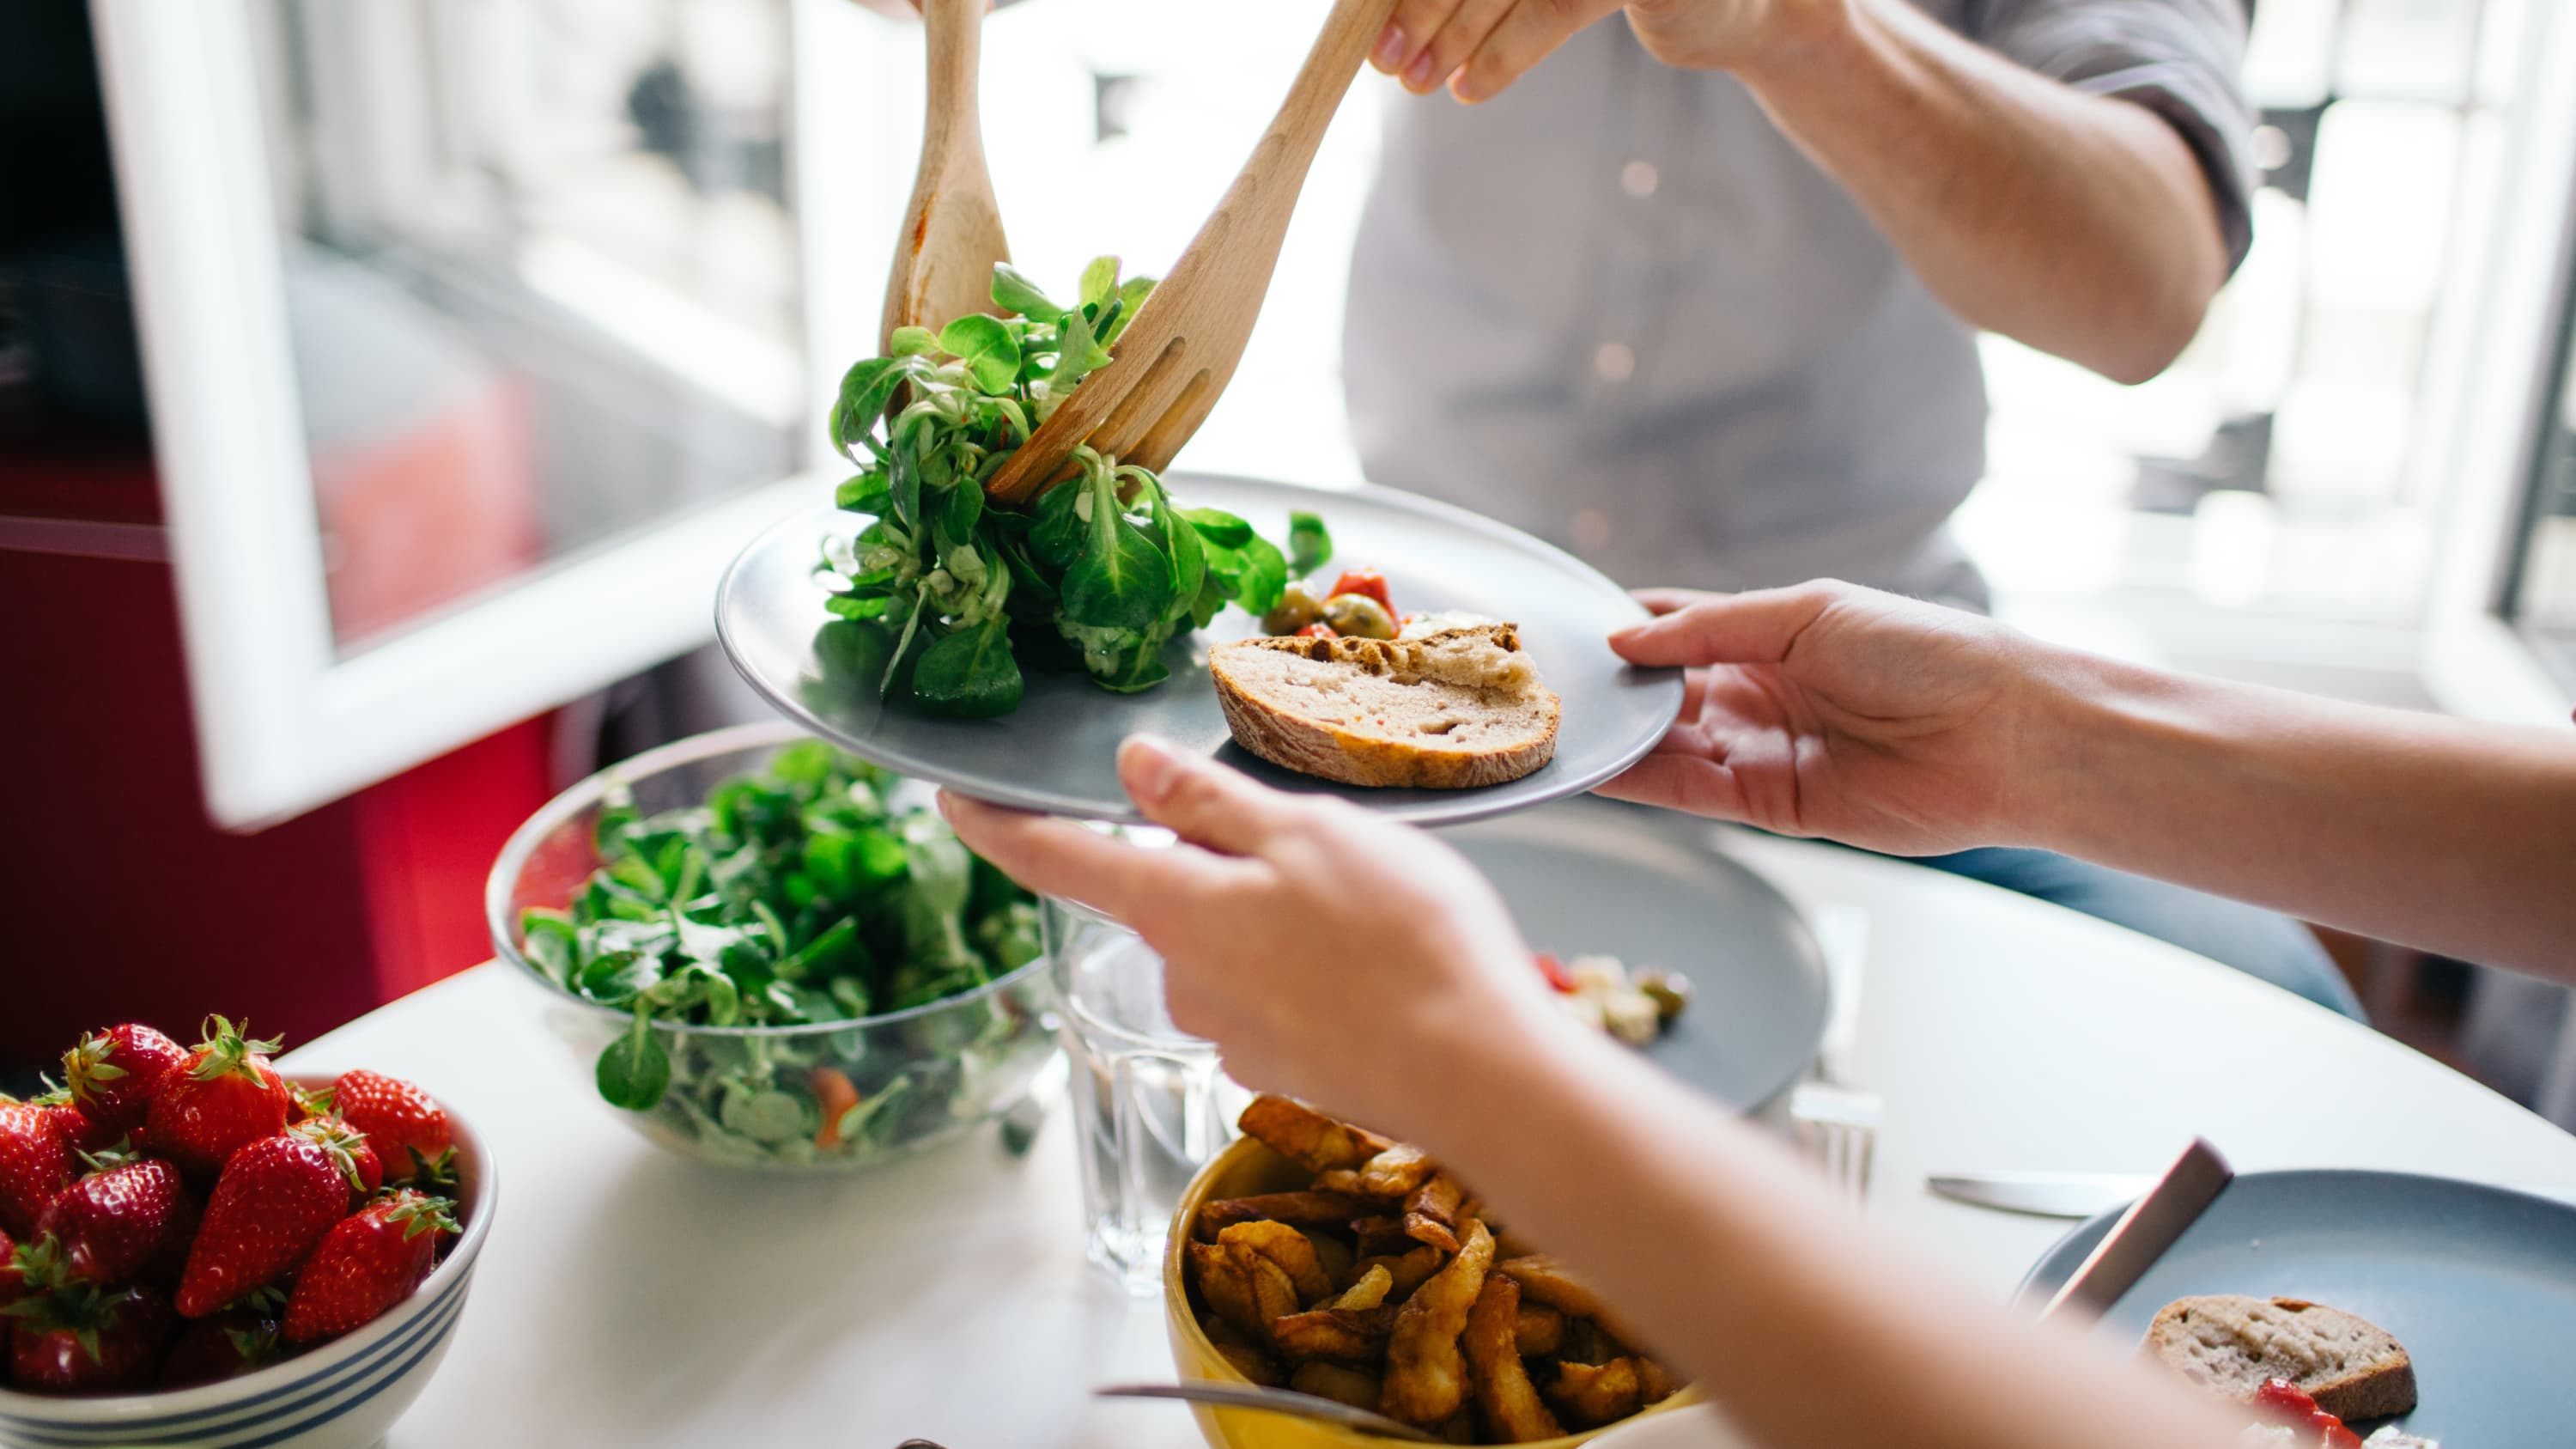 At a dinner table, one person extends their plate as another person serves salad.